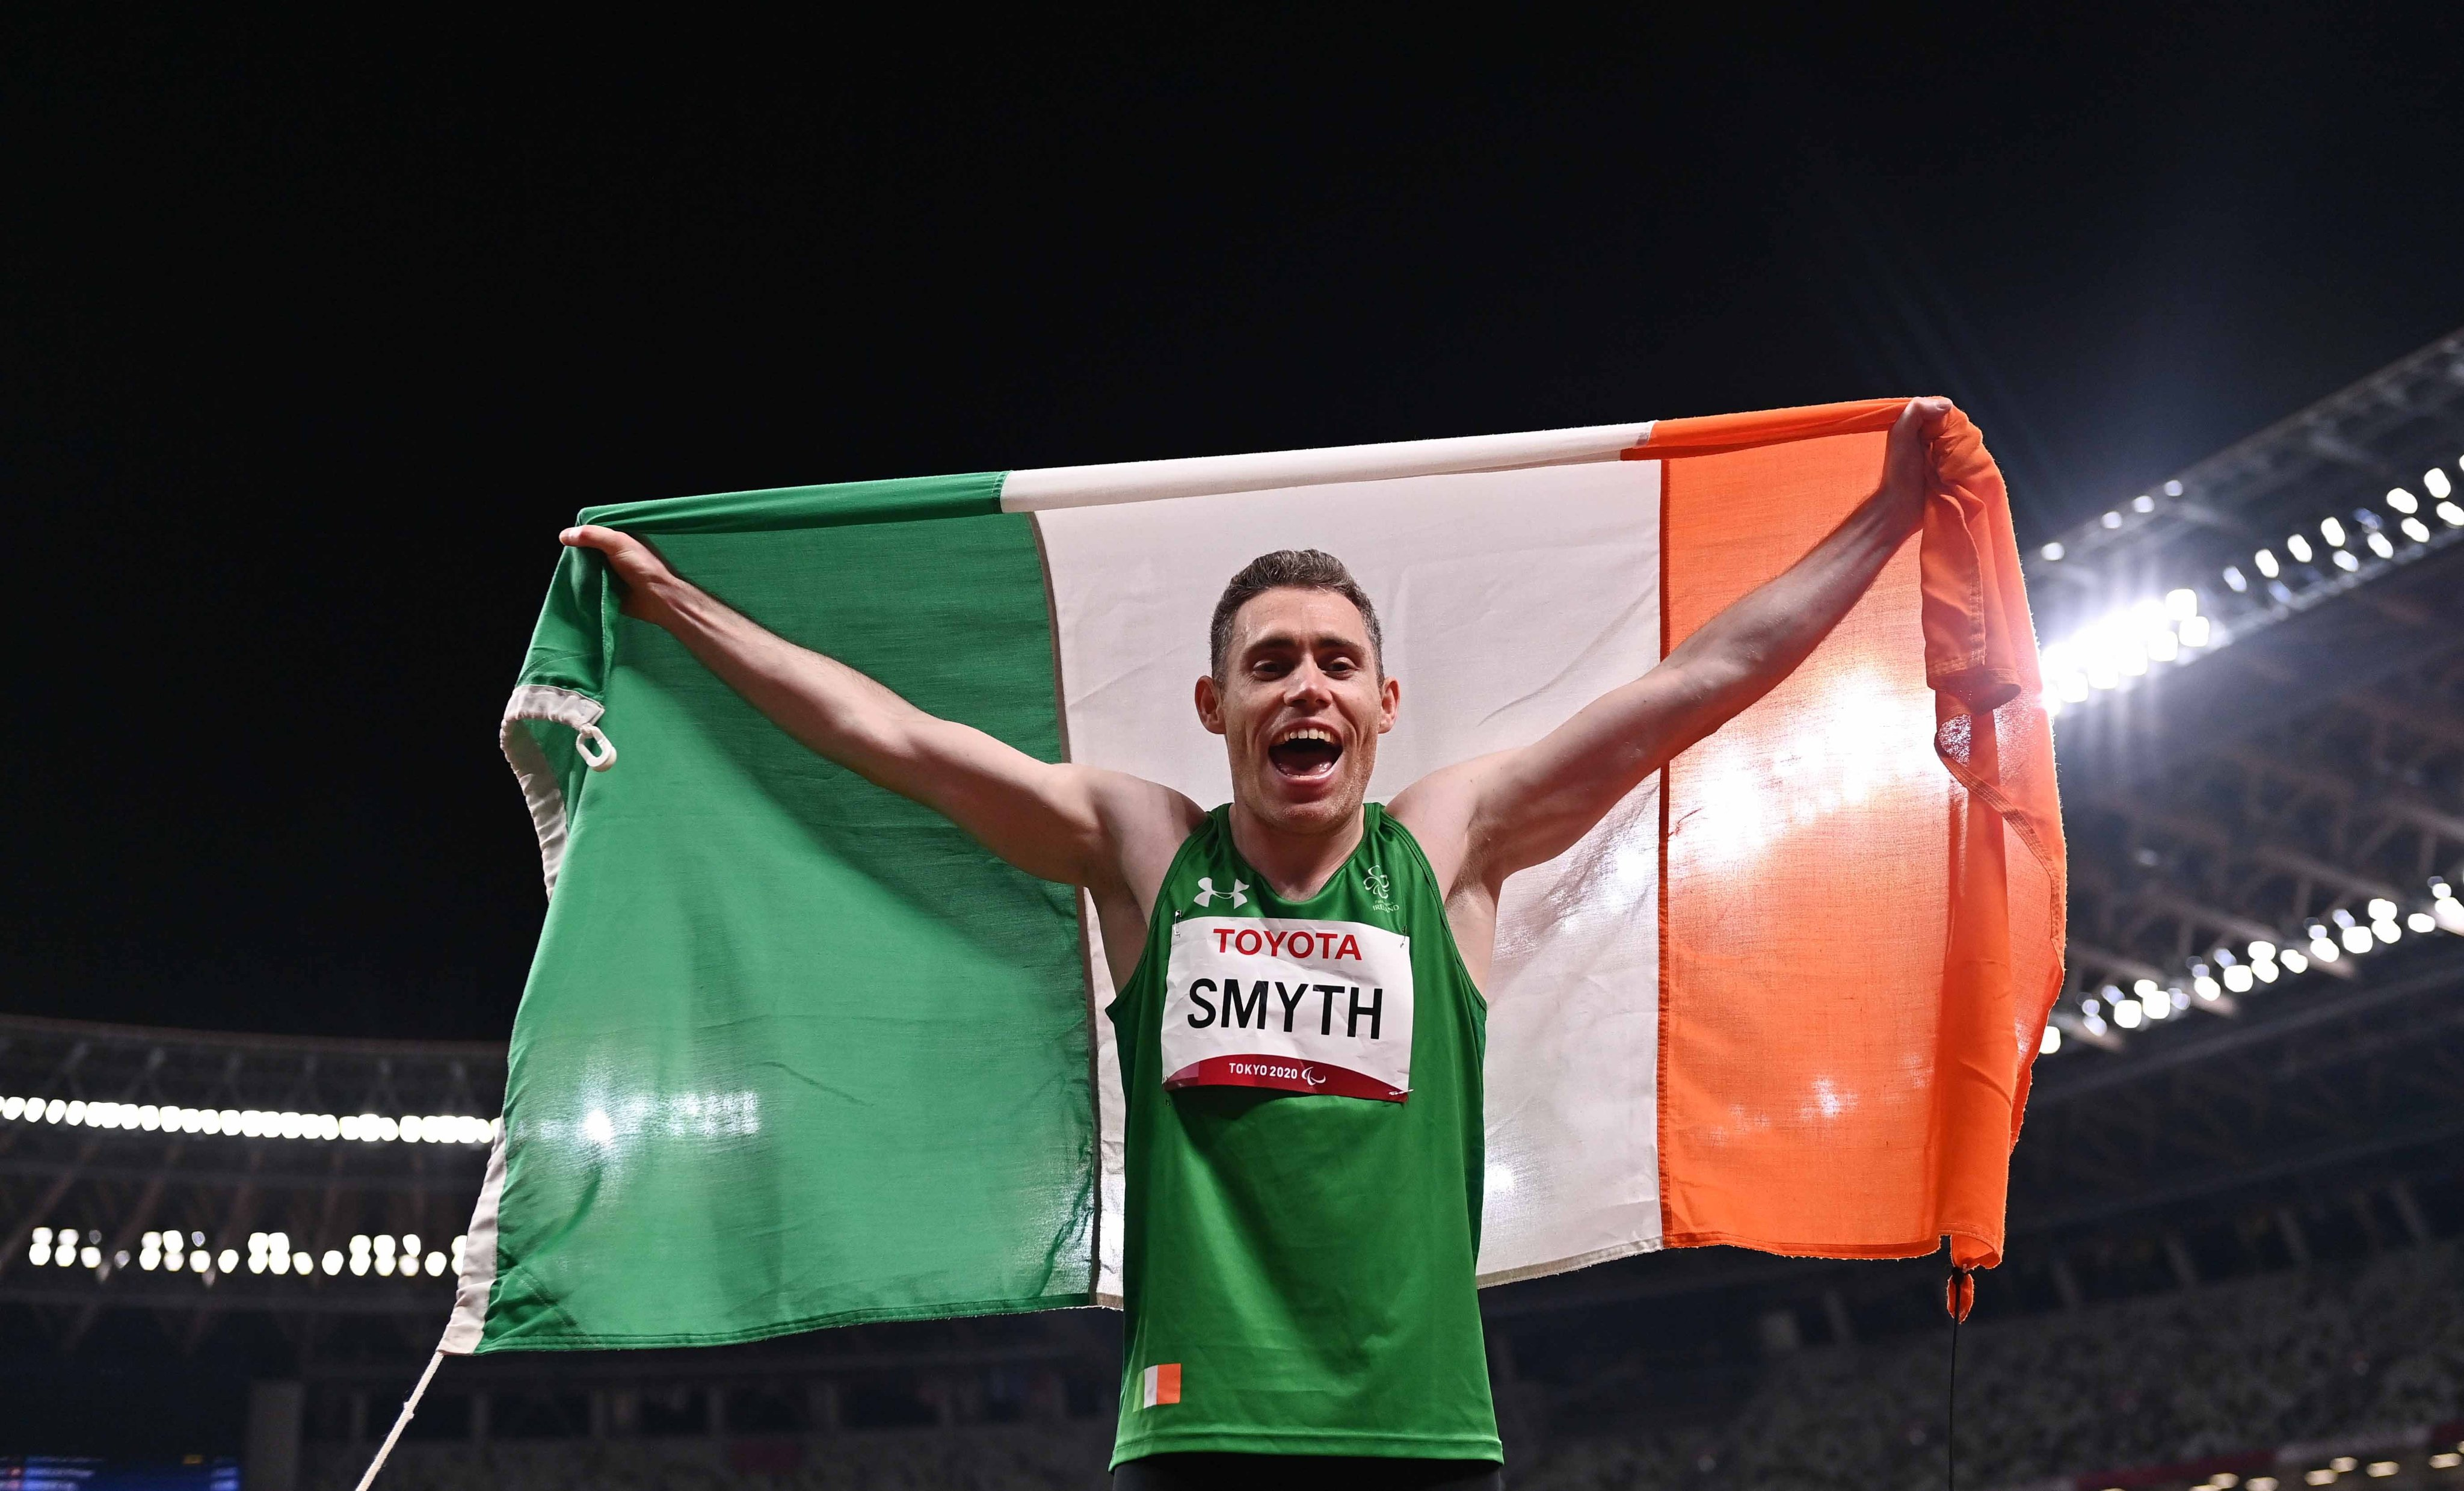 Smyth is the Paralympic Champion